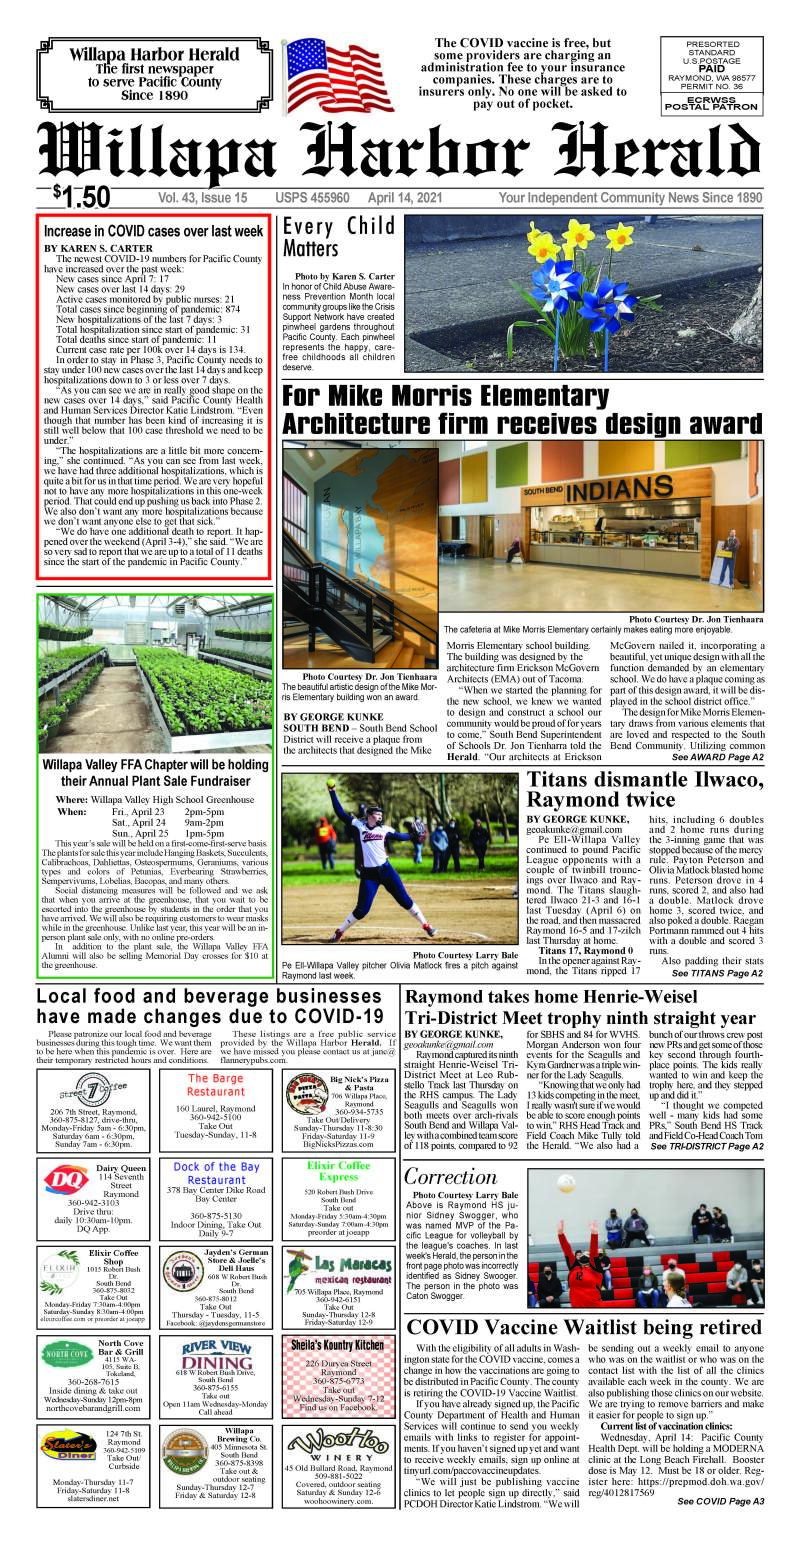 April 14, 2021 Willapa Harbor Herald and Pacific County Press